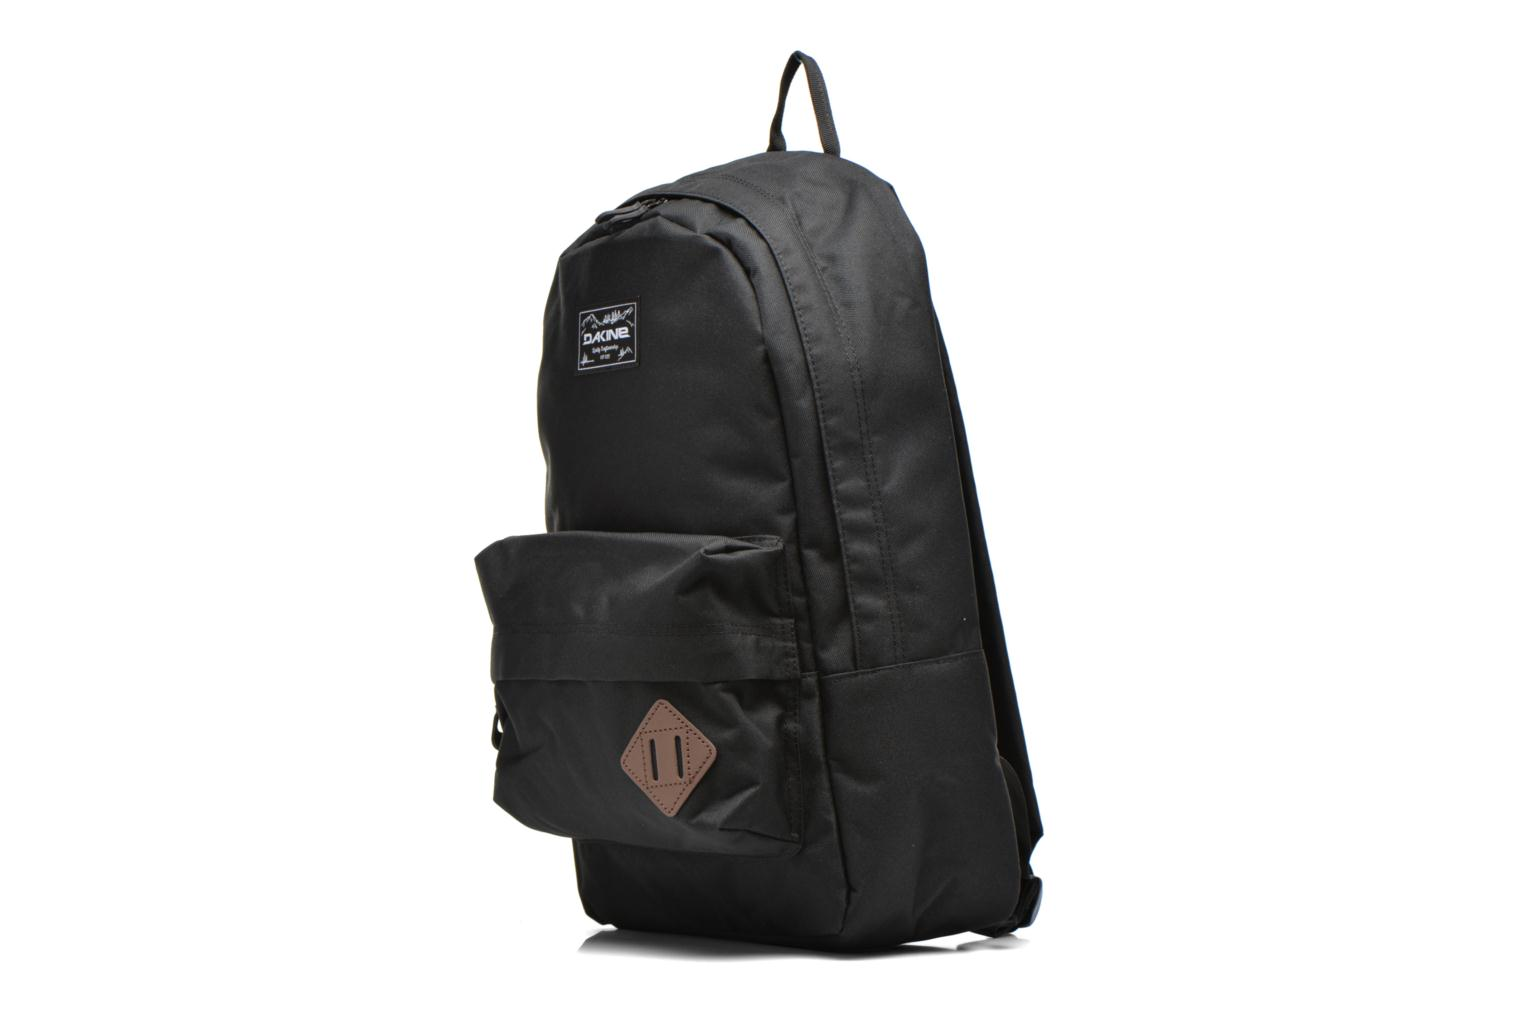 365 PACK BACKPACK Black